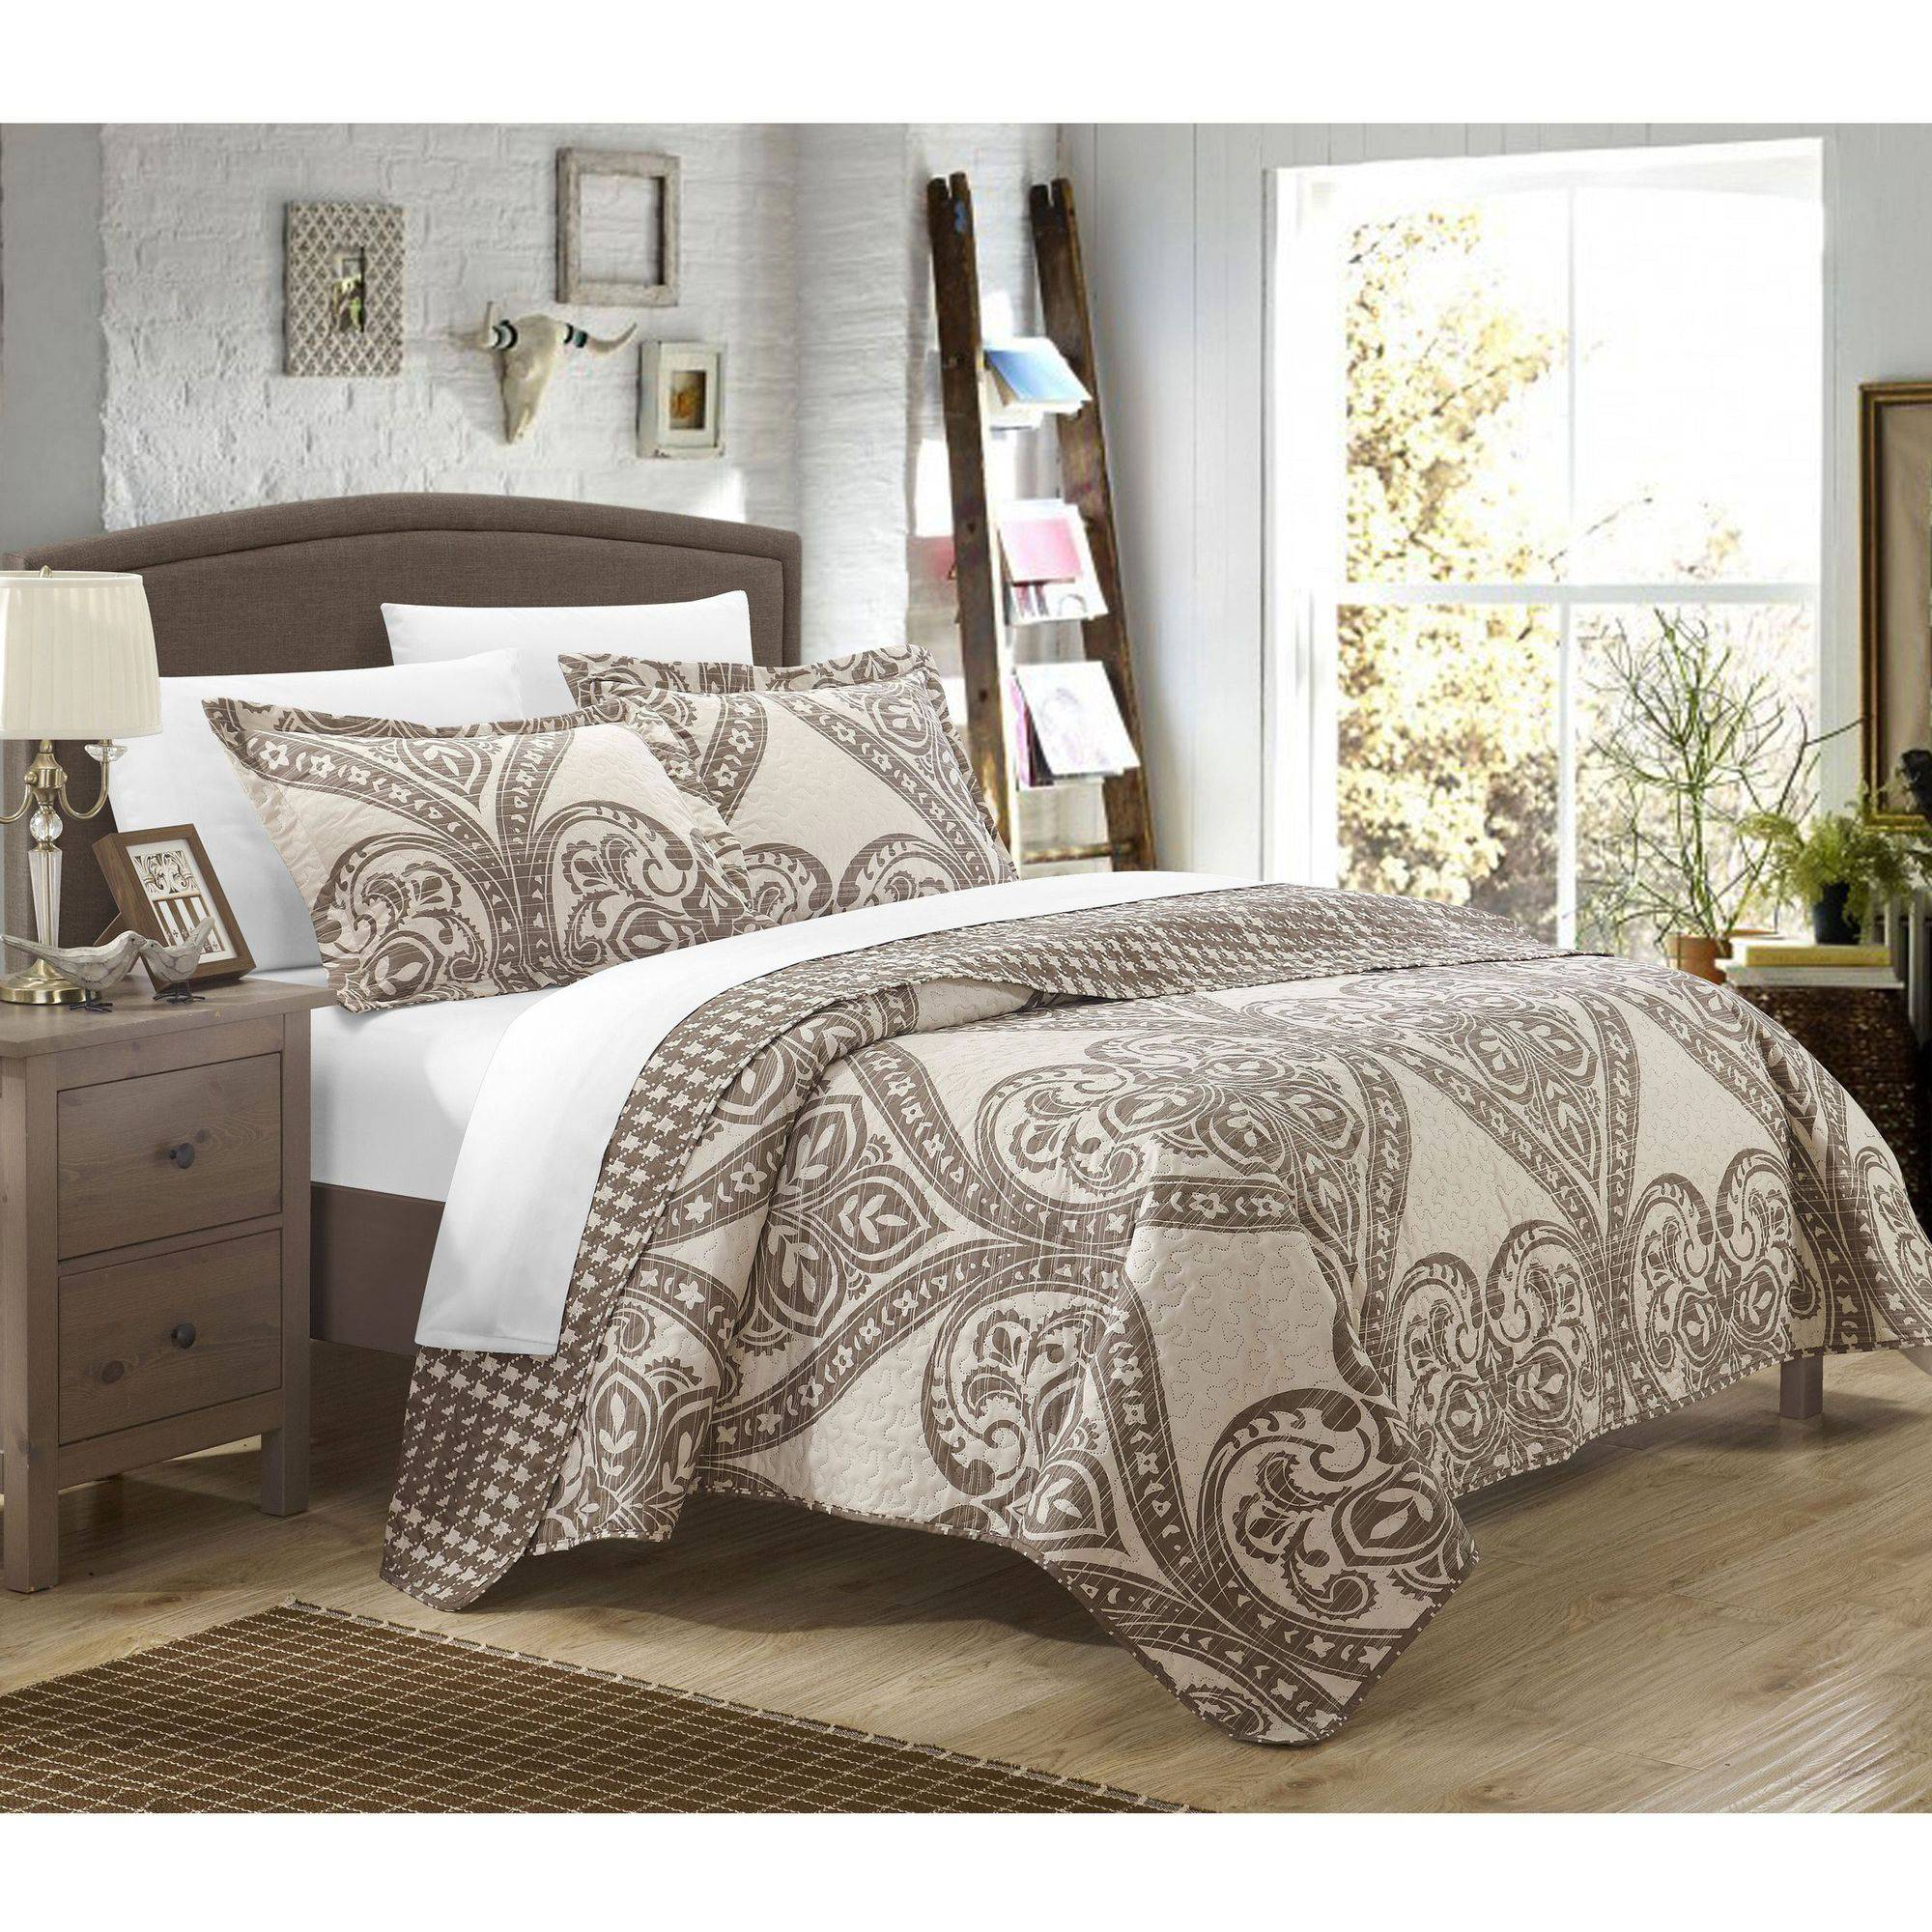 Chic Home 2-Piece Terni Reversible Printed Quilt Set